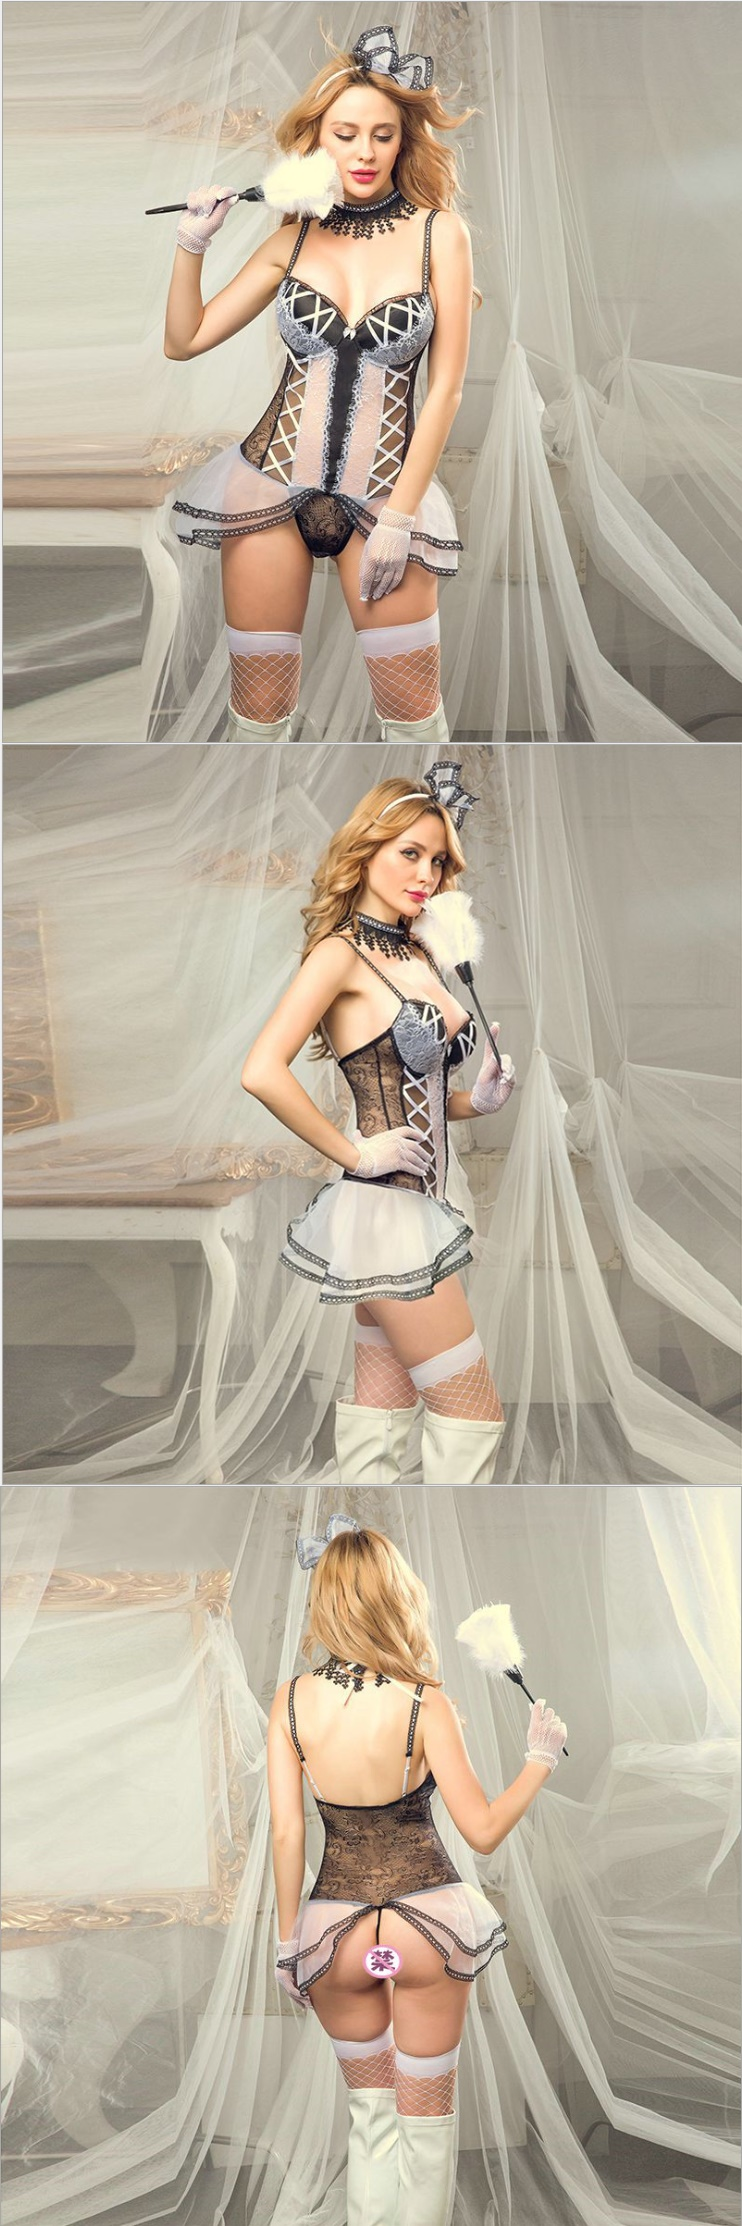 adultloving|MARVELOUS MAID COSTUME